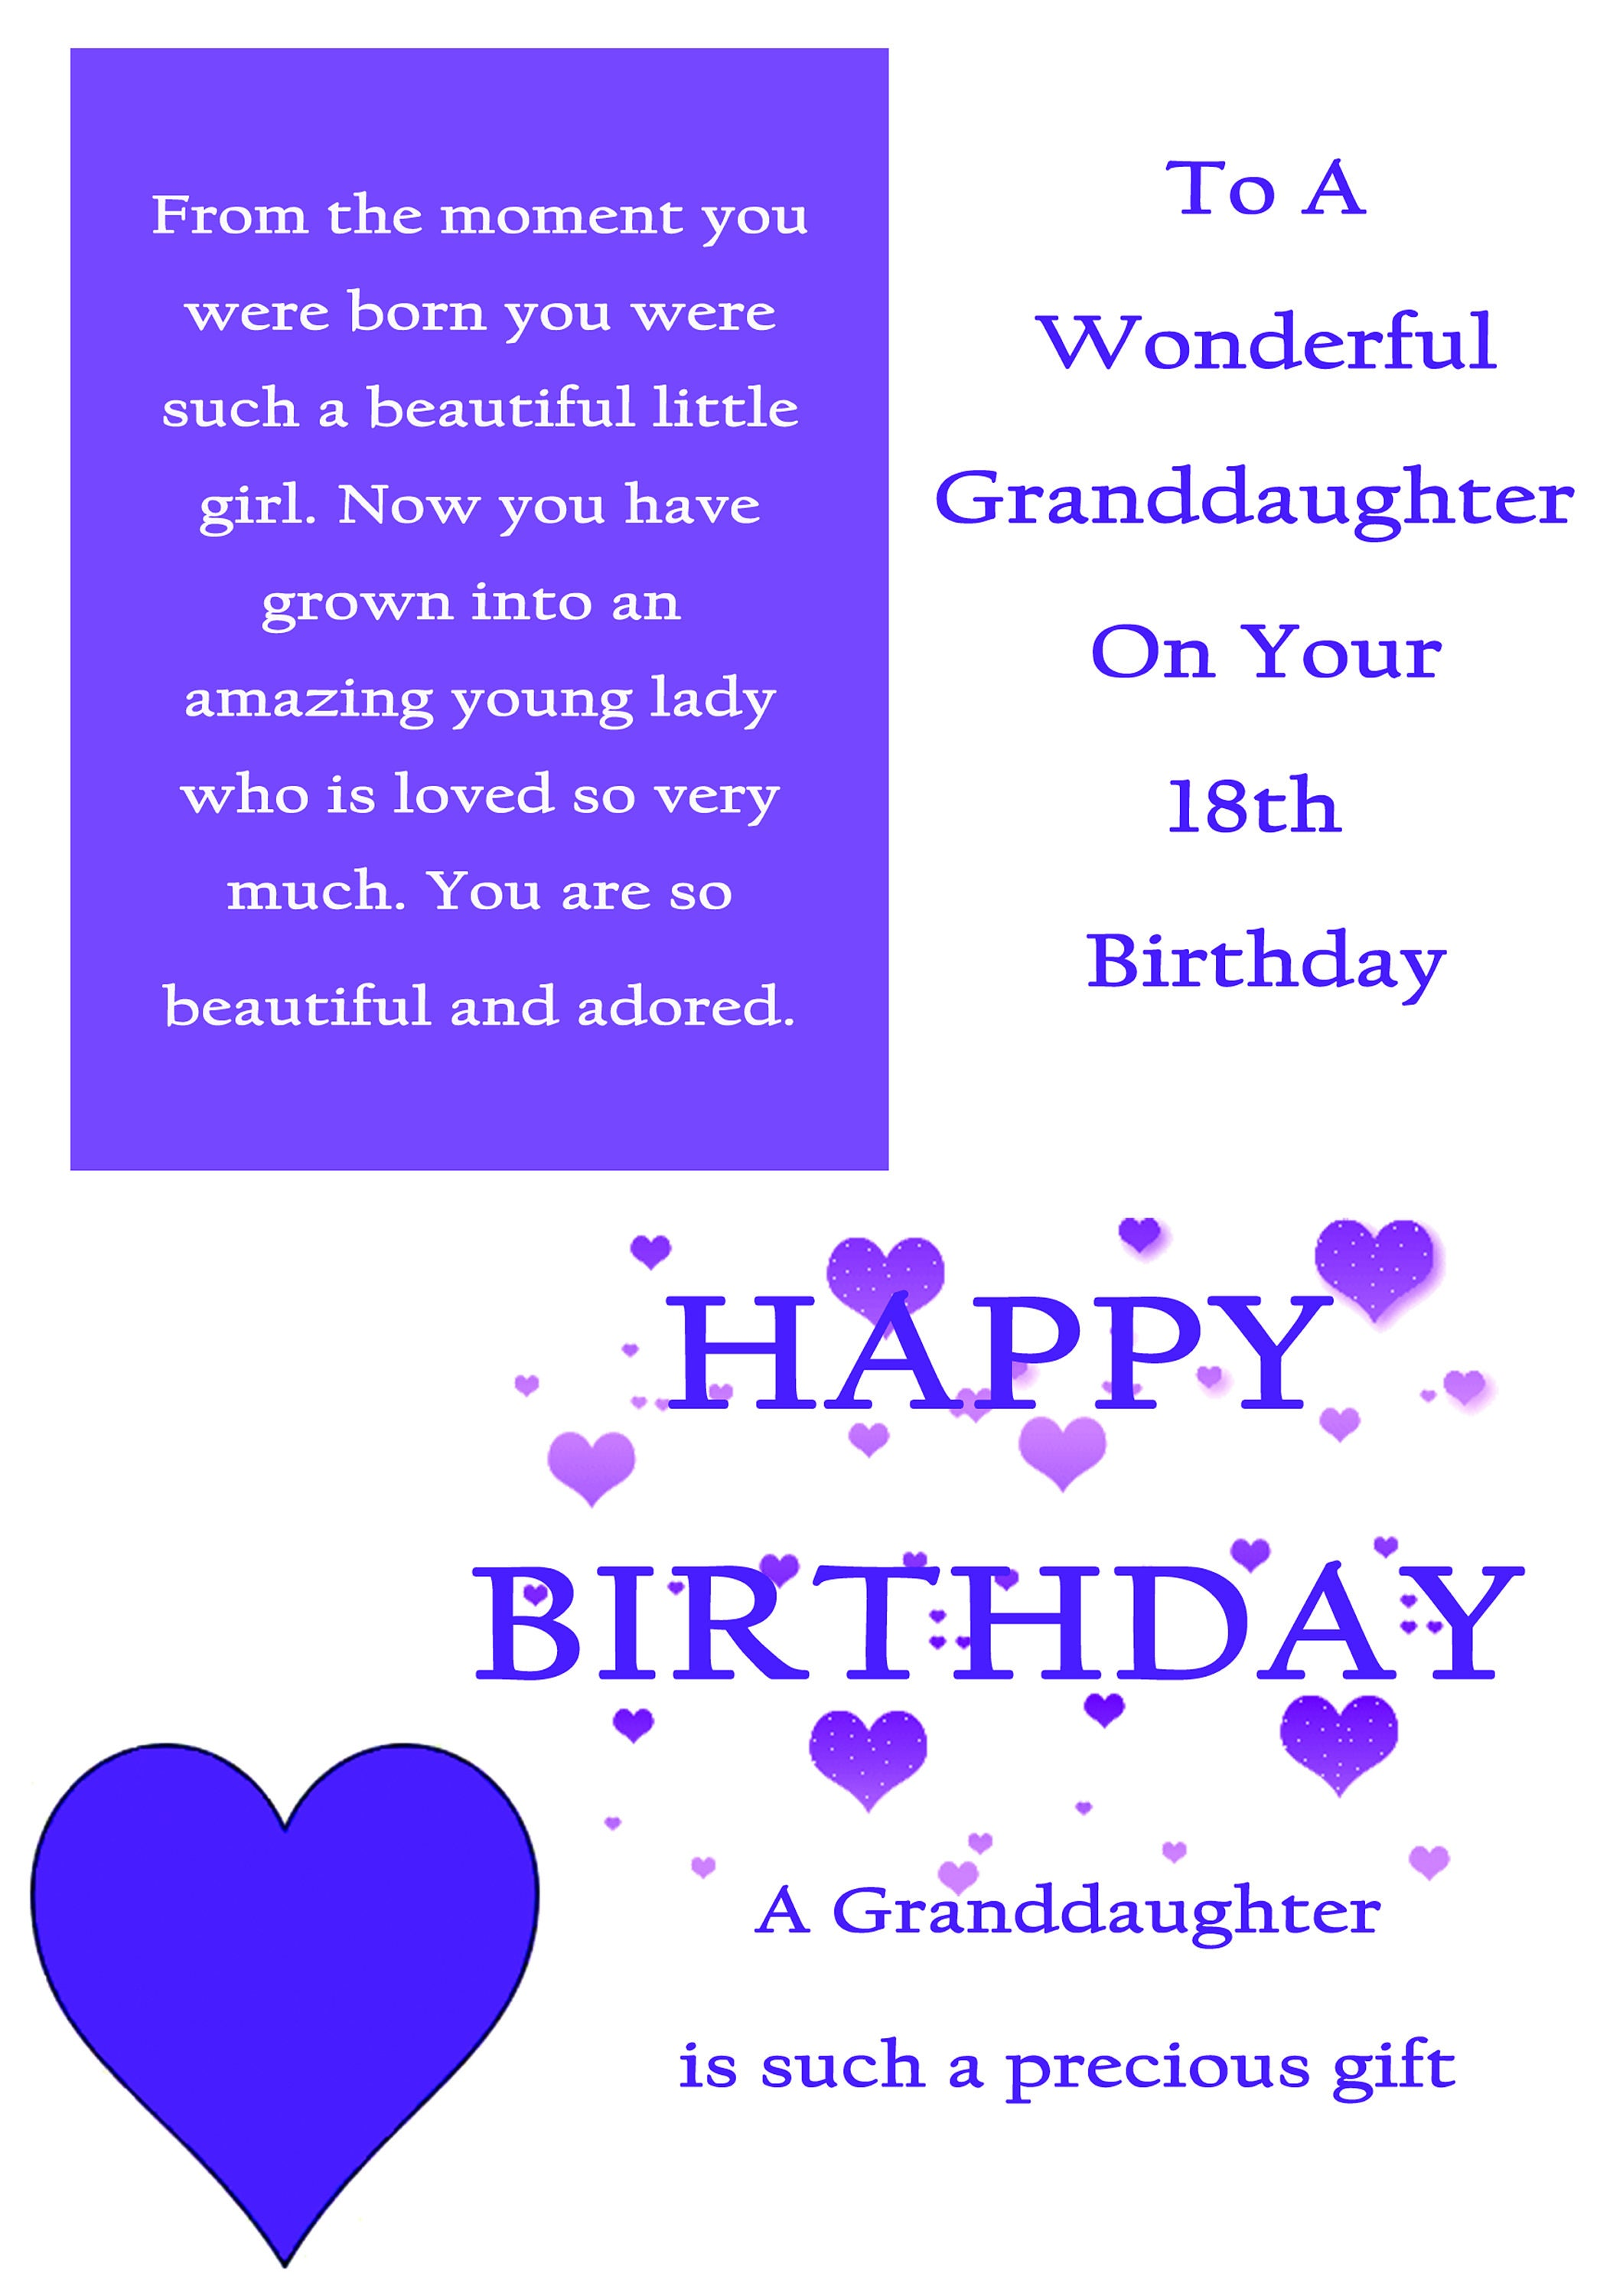 Granddaughter 18 Birthday Card With Removable Laminate